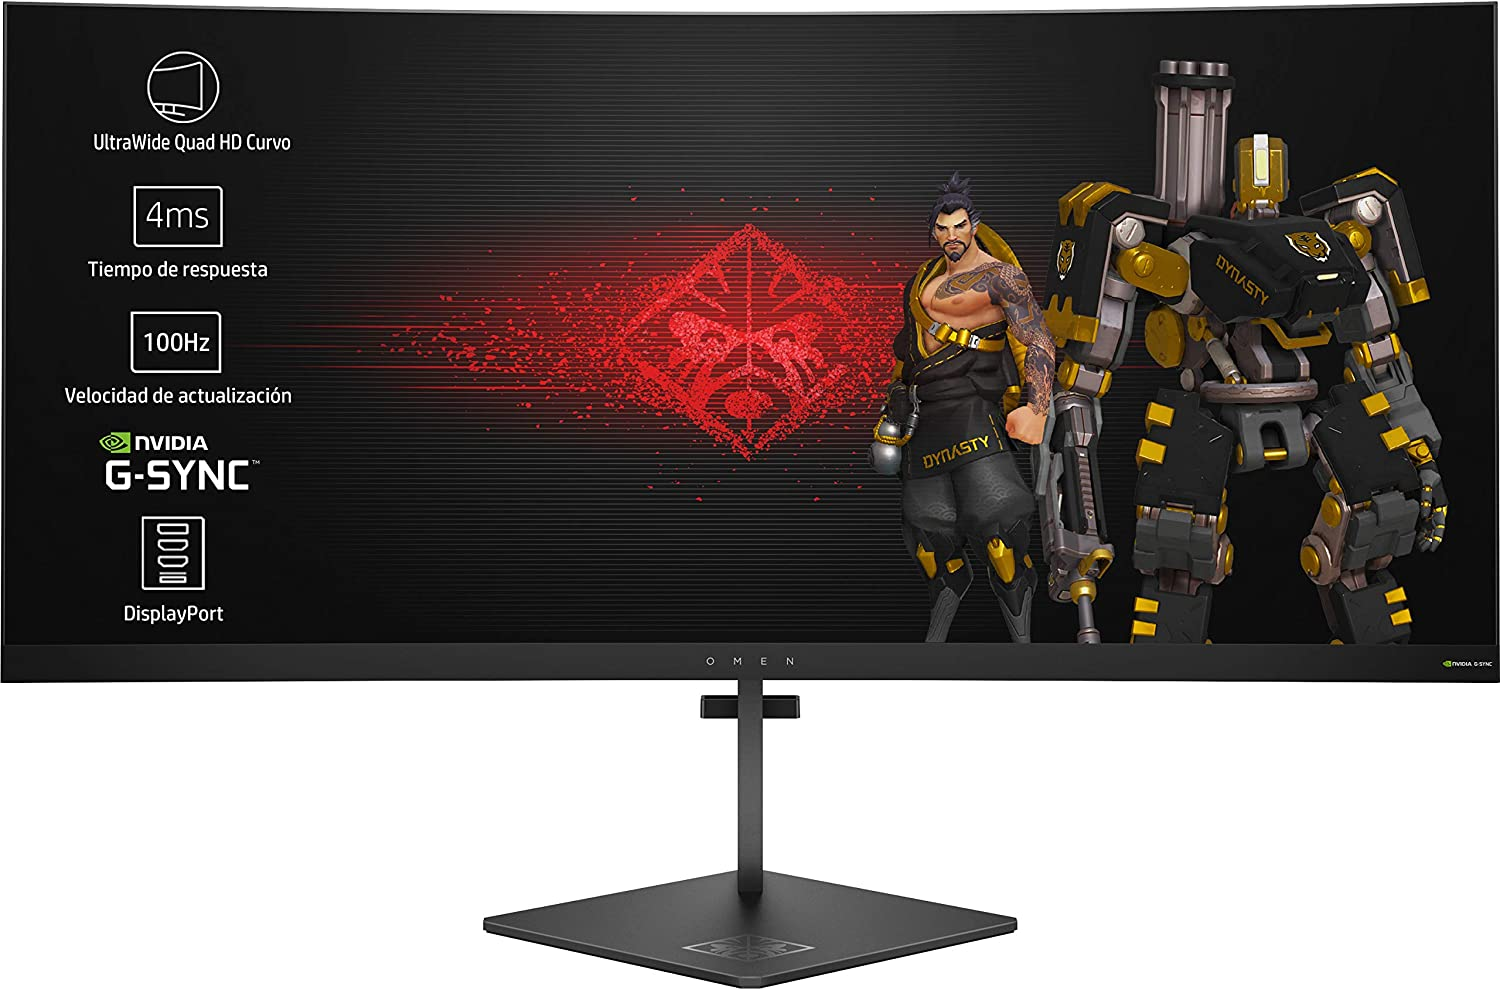 HP OMEN X 35 - Monitor Gaming para PC Desktop G-sync  + Altura Ajustable de 88.90 cm (35 pulgadas, 300 cd/m², 3440 x 1440 pixeles, 4 ms, LED, UltraWide Quad HD)